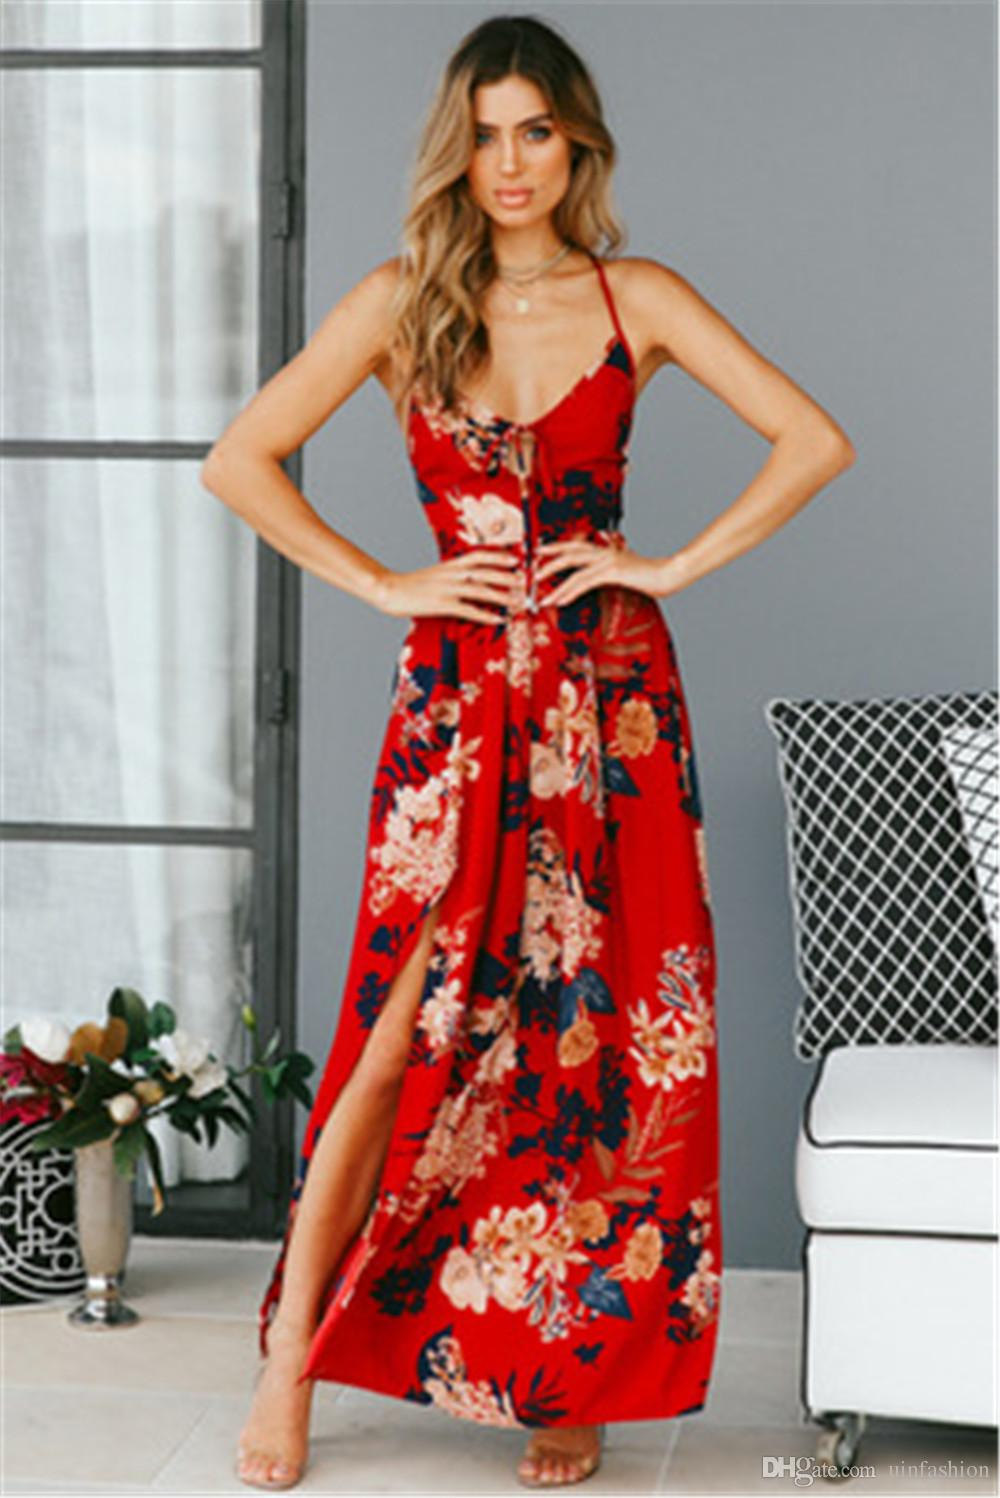 686d3d8045d Red Floral Print Maxi Dresses Sexy Lace Up V Neck Women Sleeveless Evening  Party Split Backless Boho Dress Brides Dress Summer Evening Dresses From ...